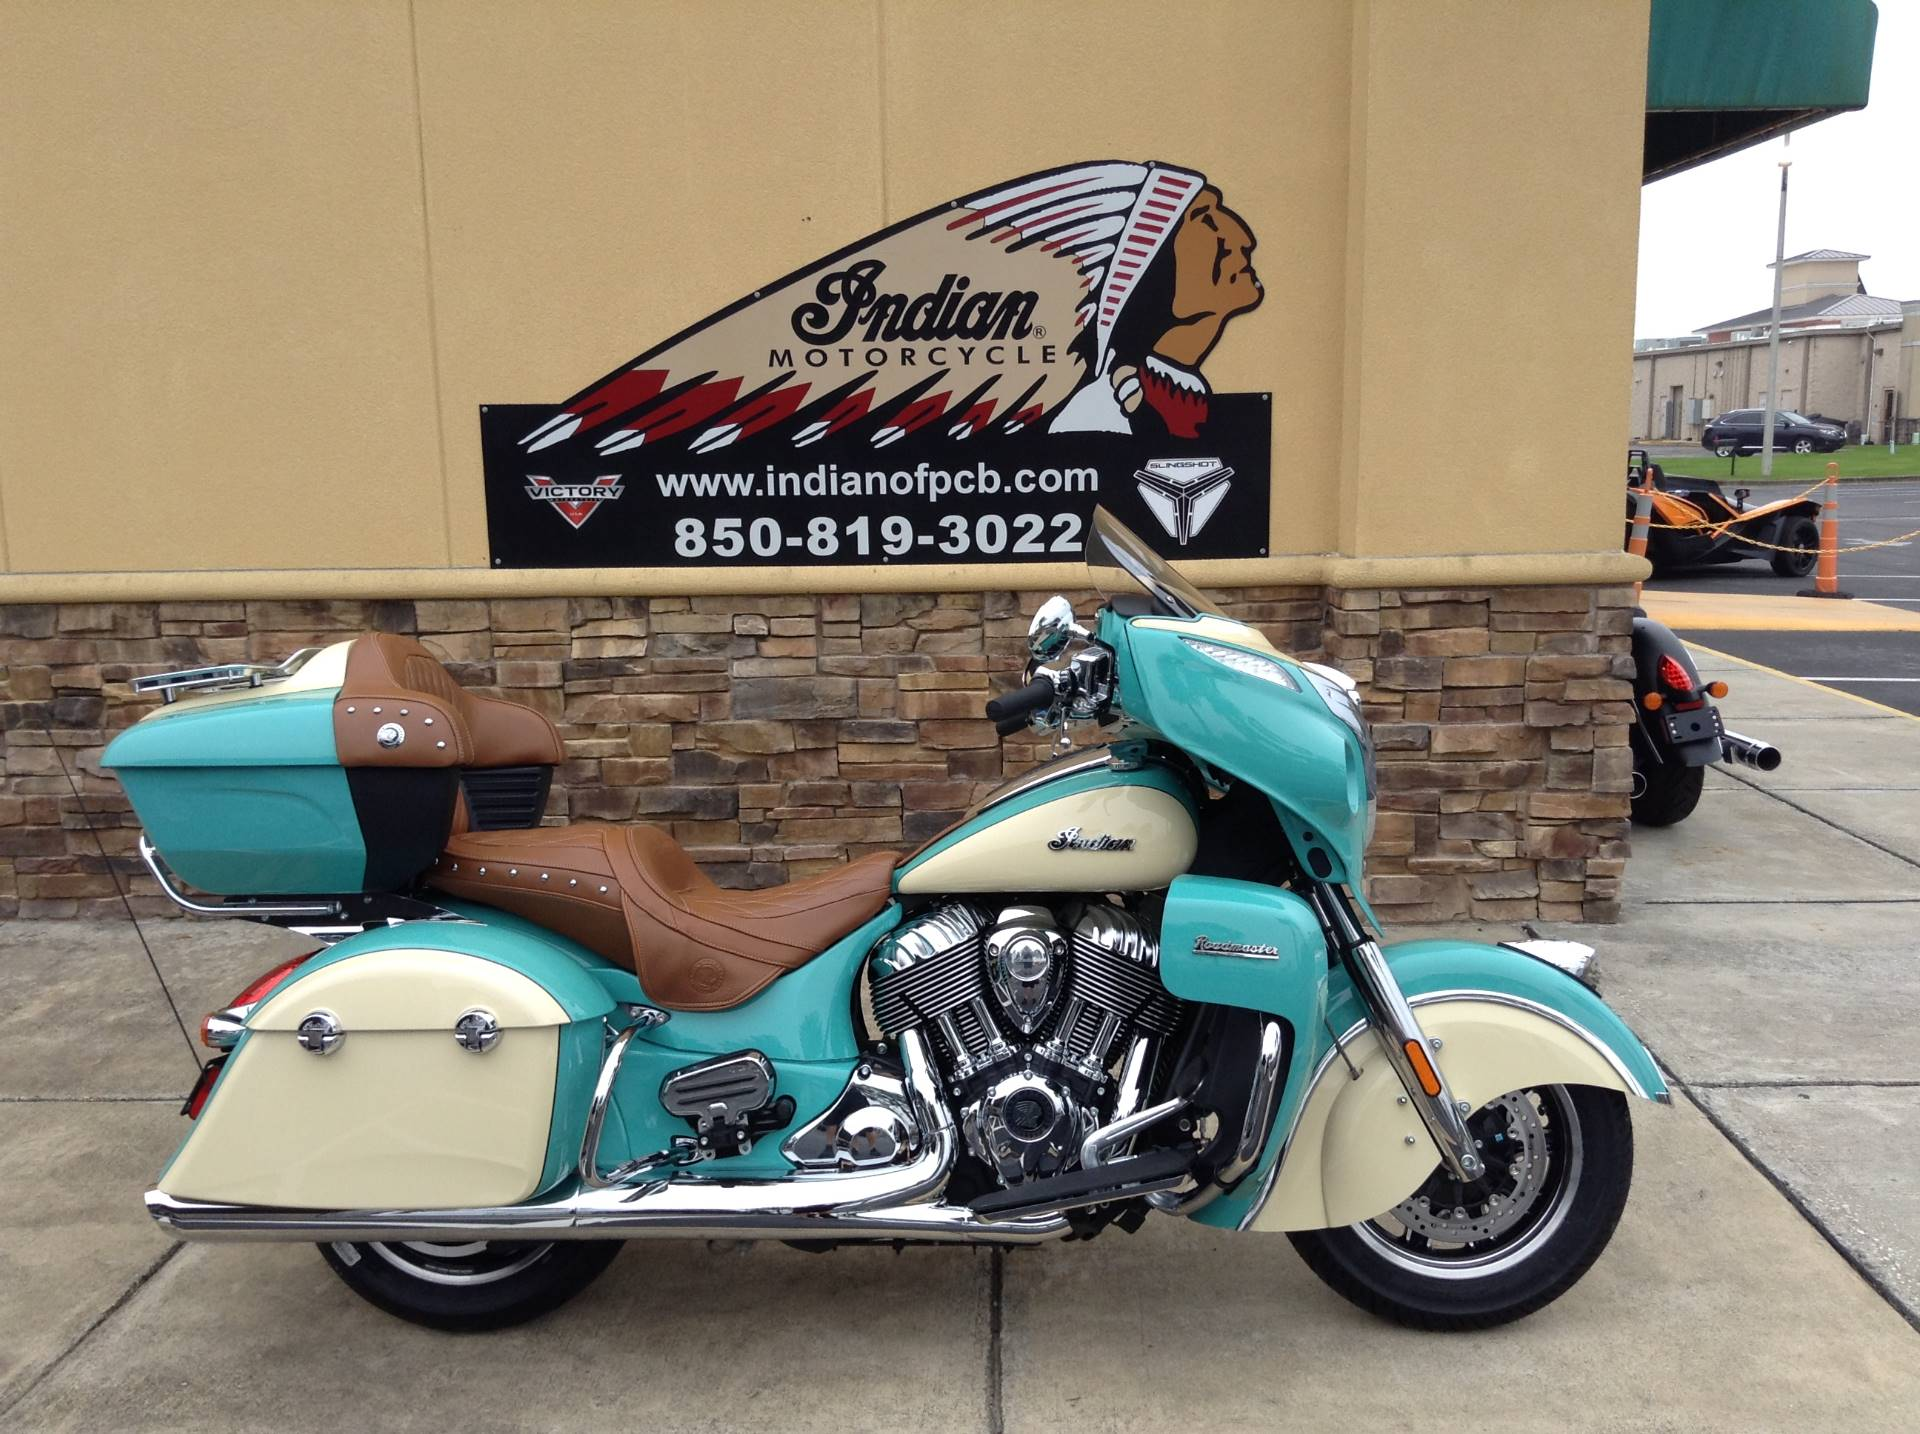 2020 Indian ROAD MASTER ICON SERIES in Panama City Beach, Florida - Photo 1